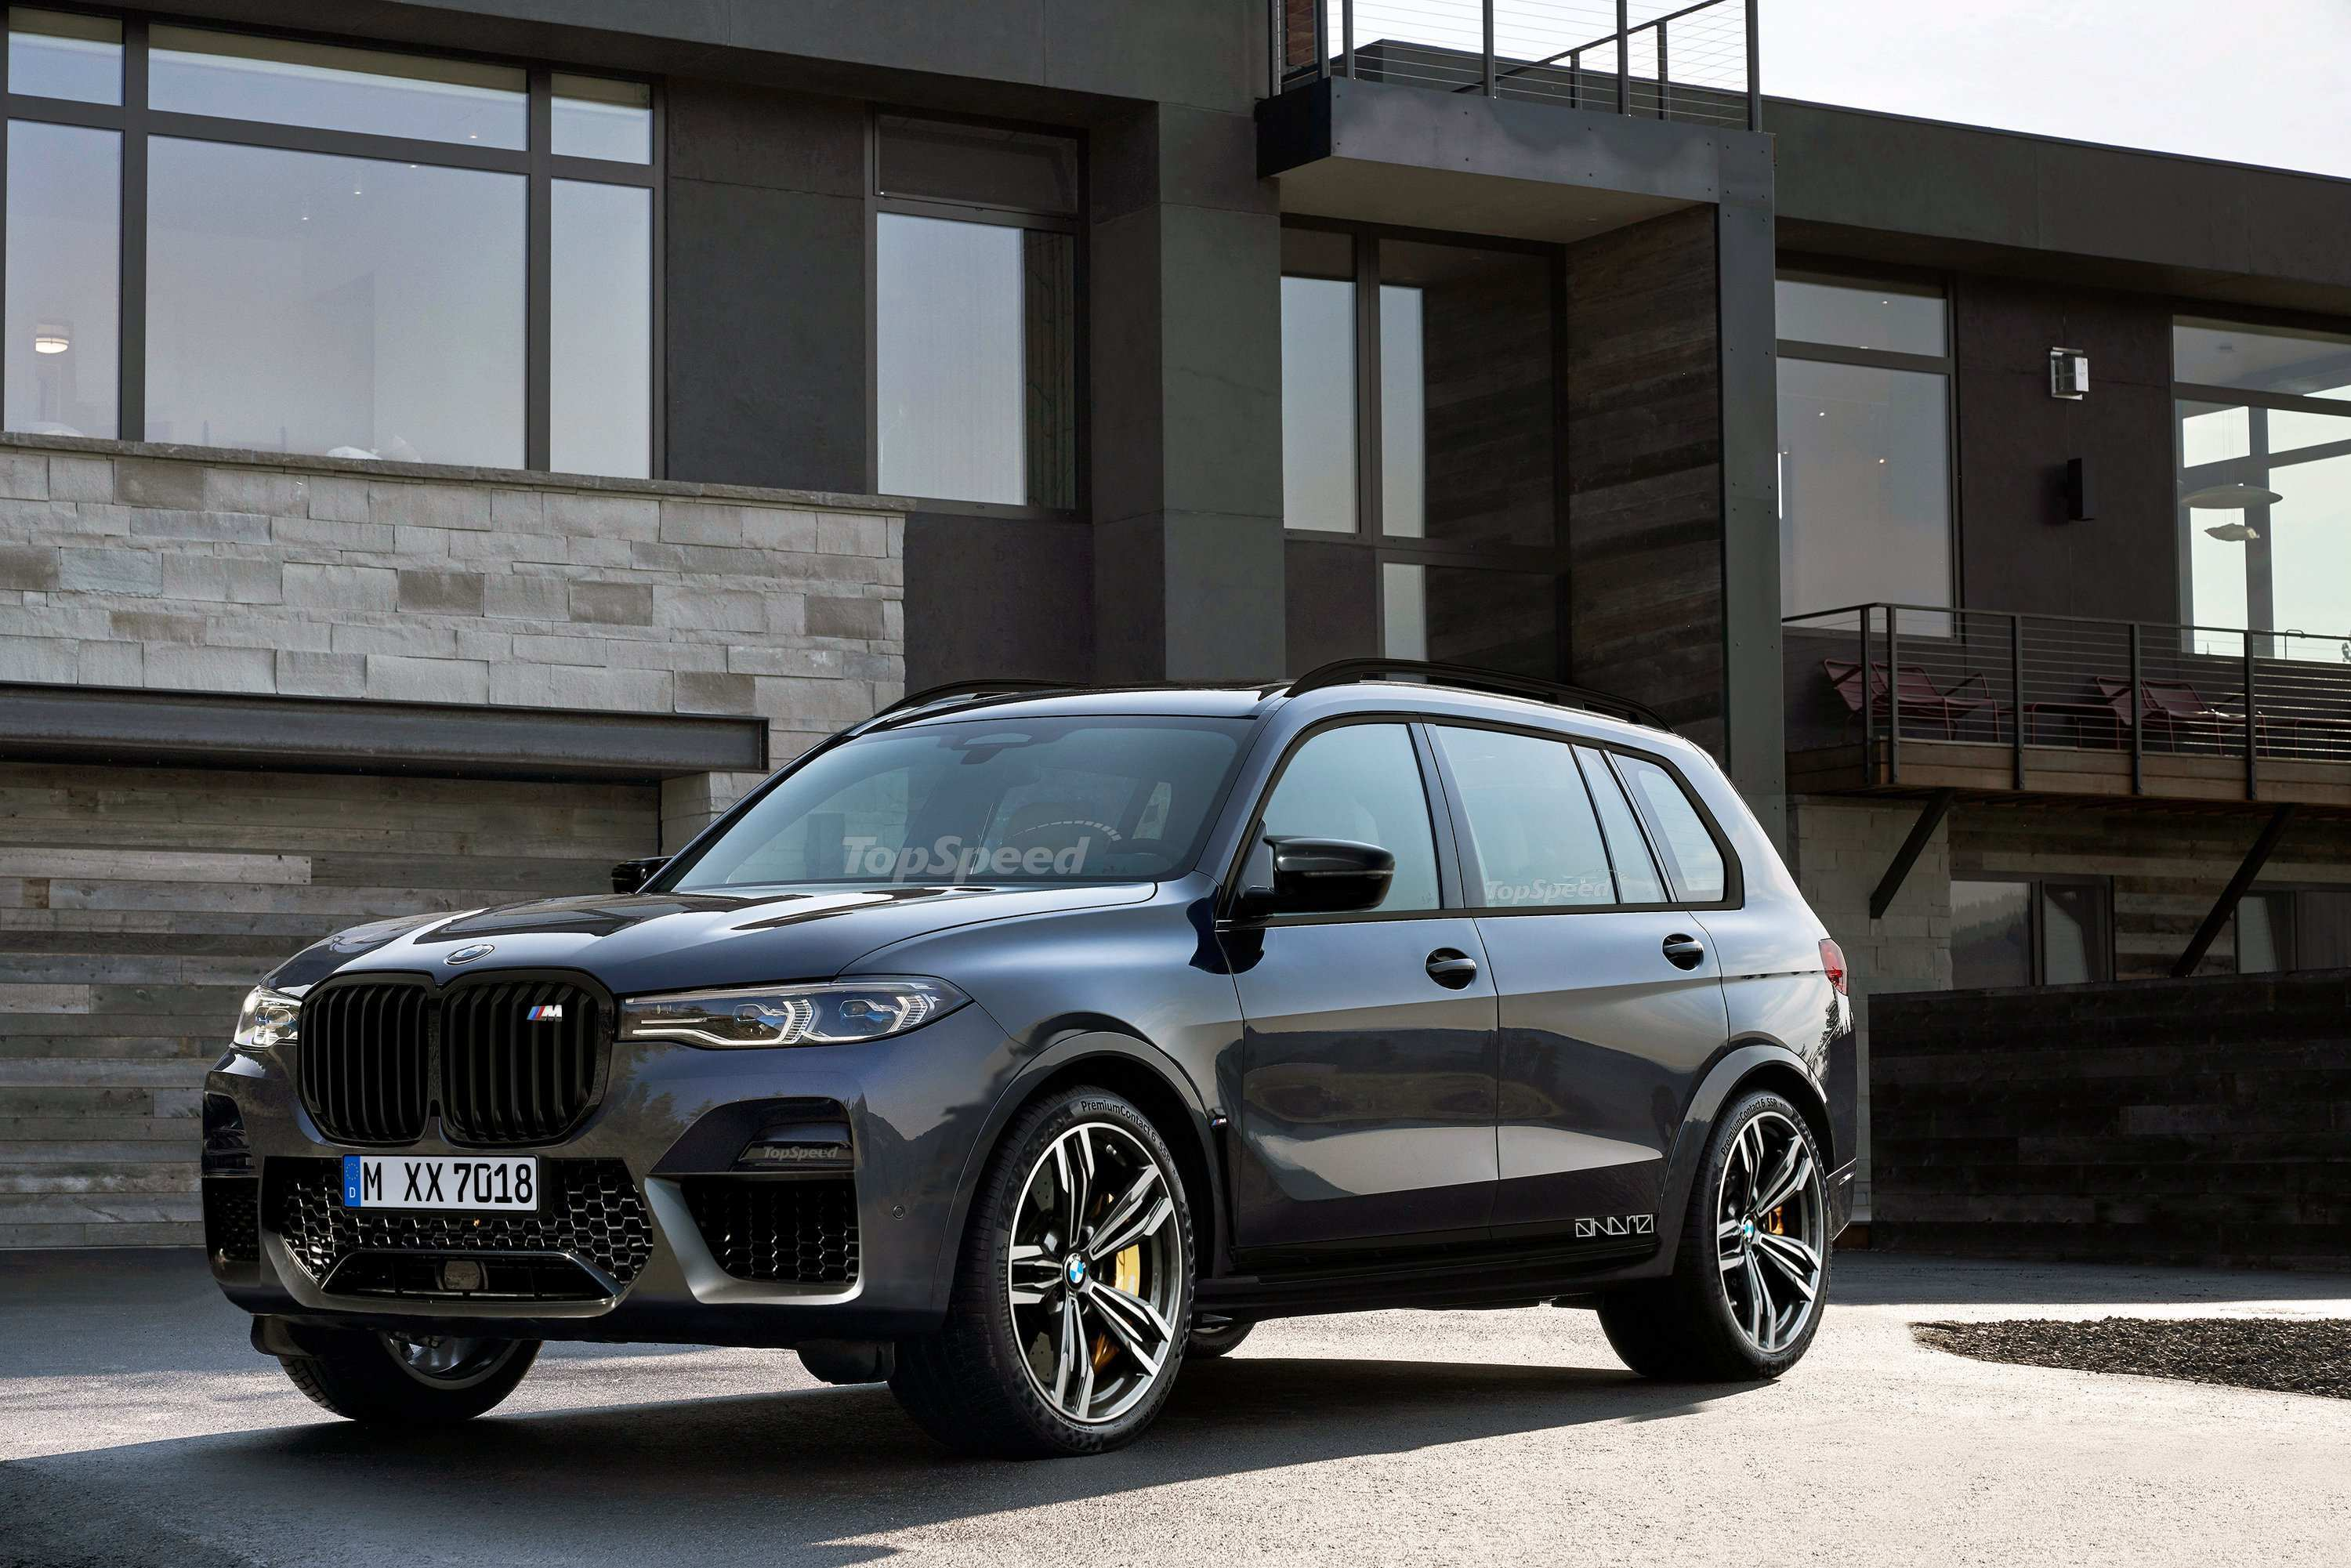 65 The Best 2020 BMW X7 Suv Series Reviews